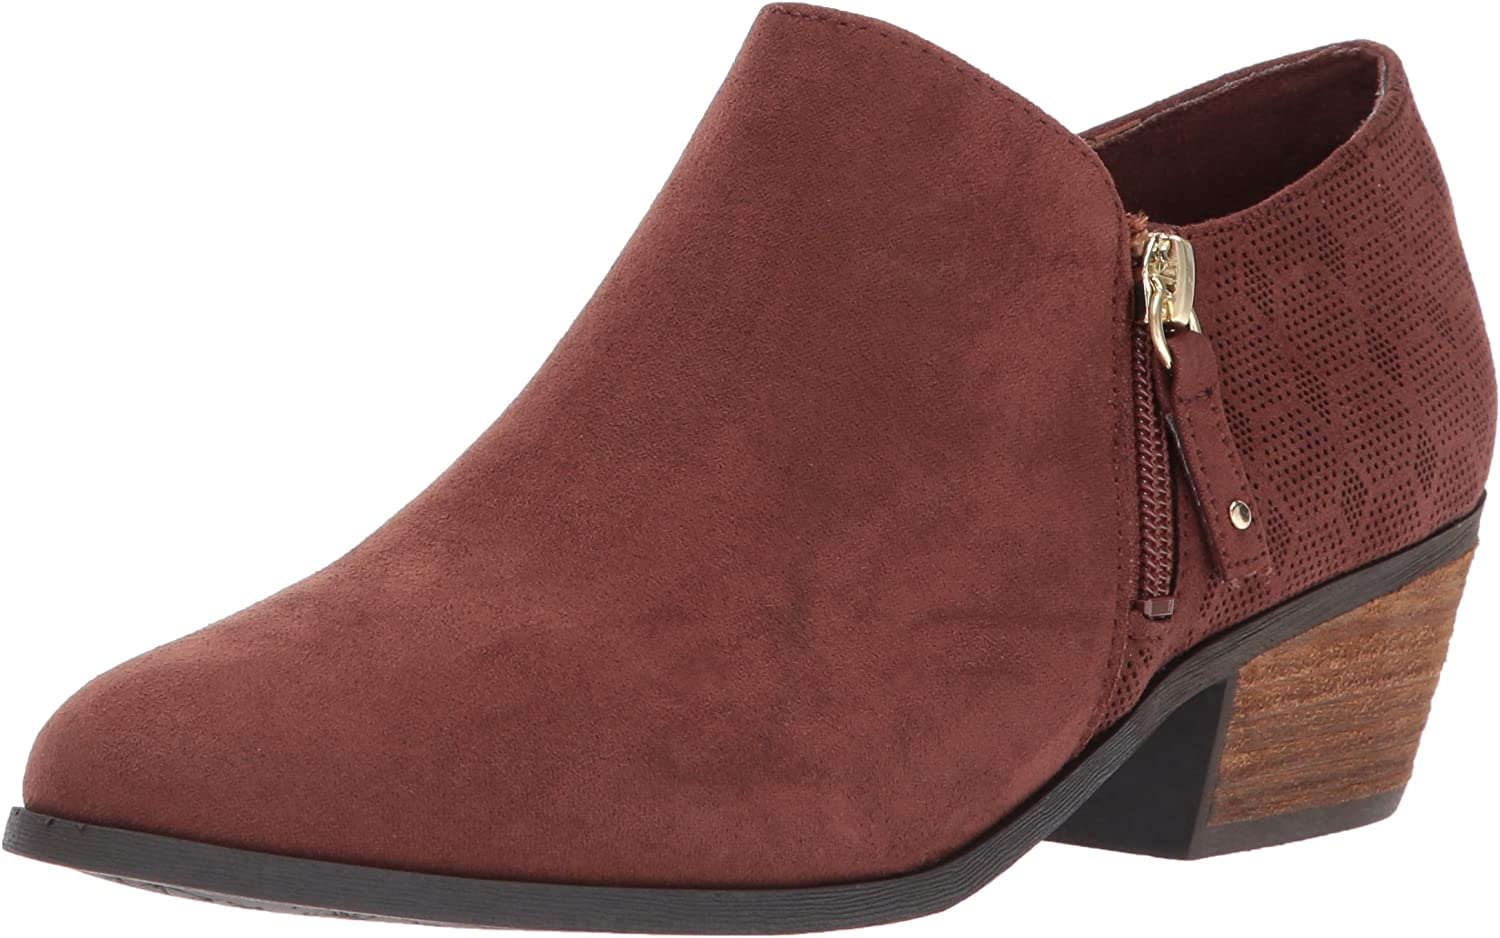 Dr. Scholl's Womens Brief Ankle Bootie